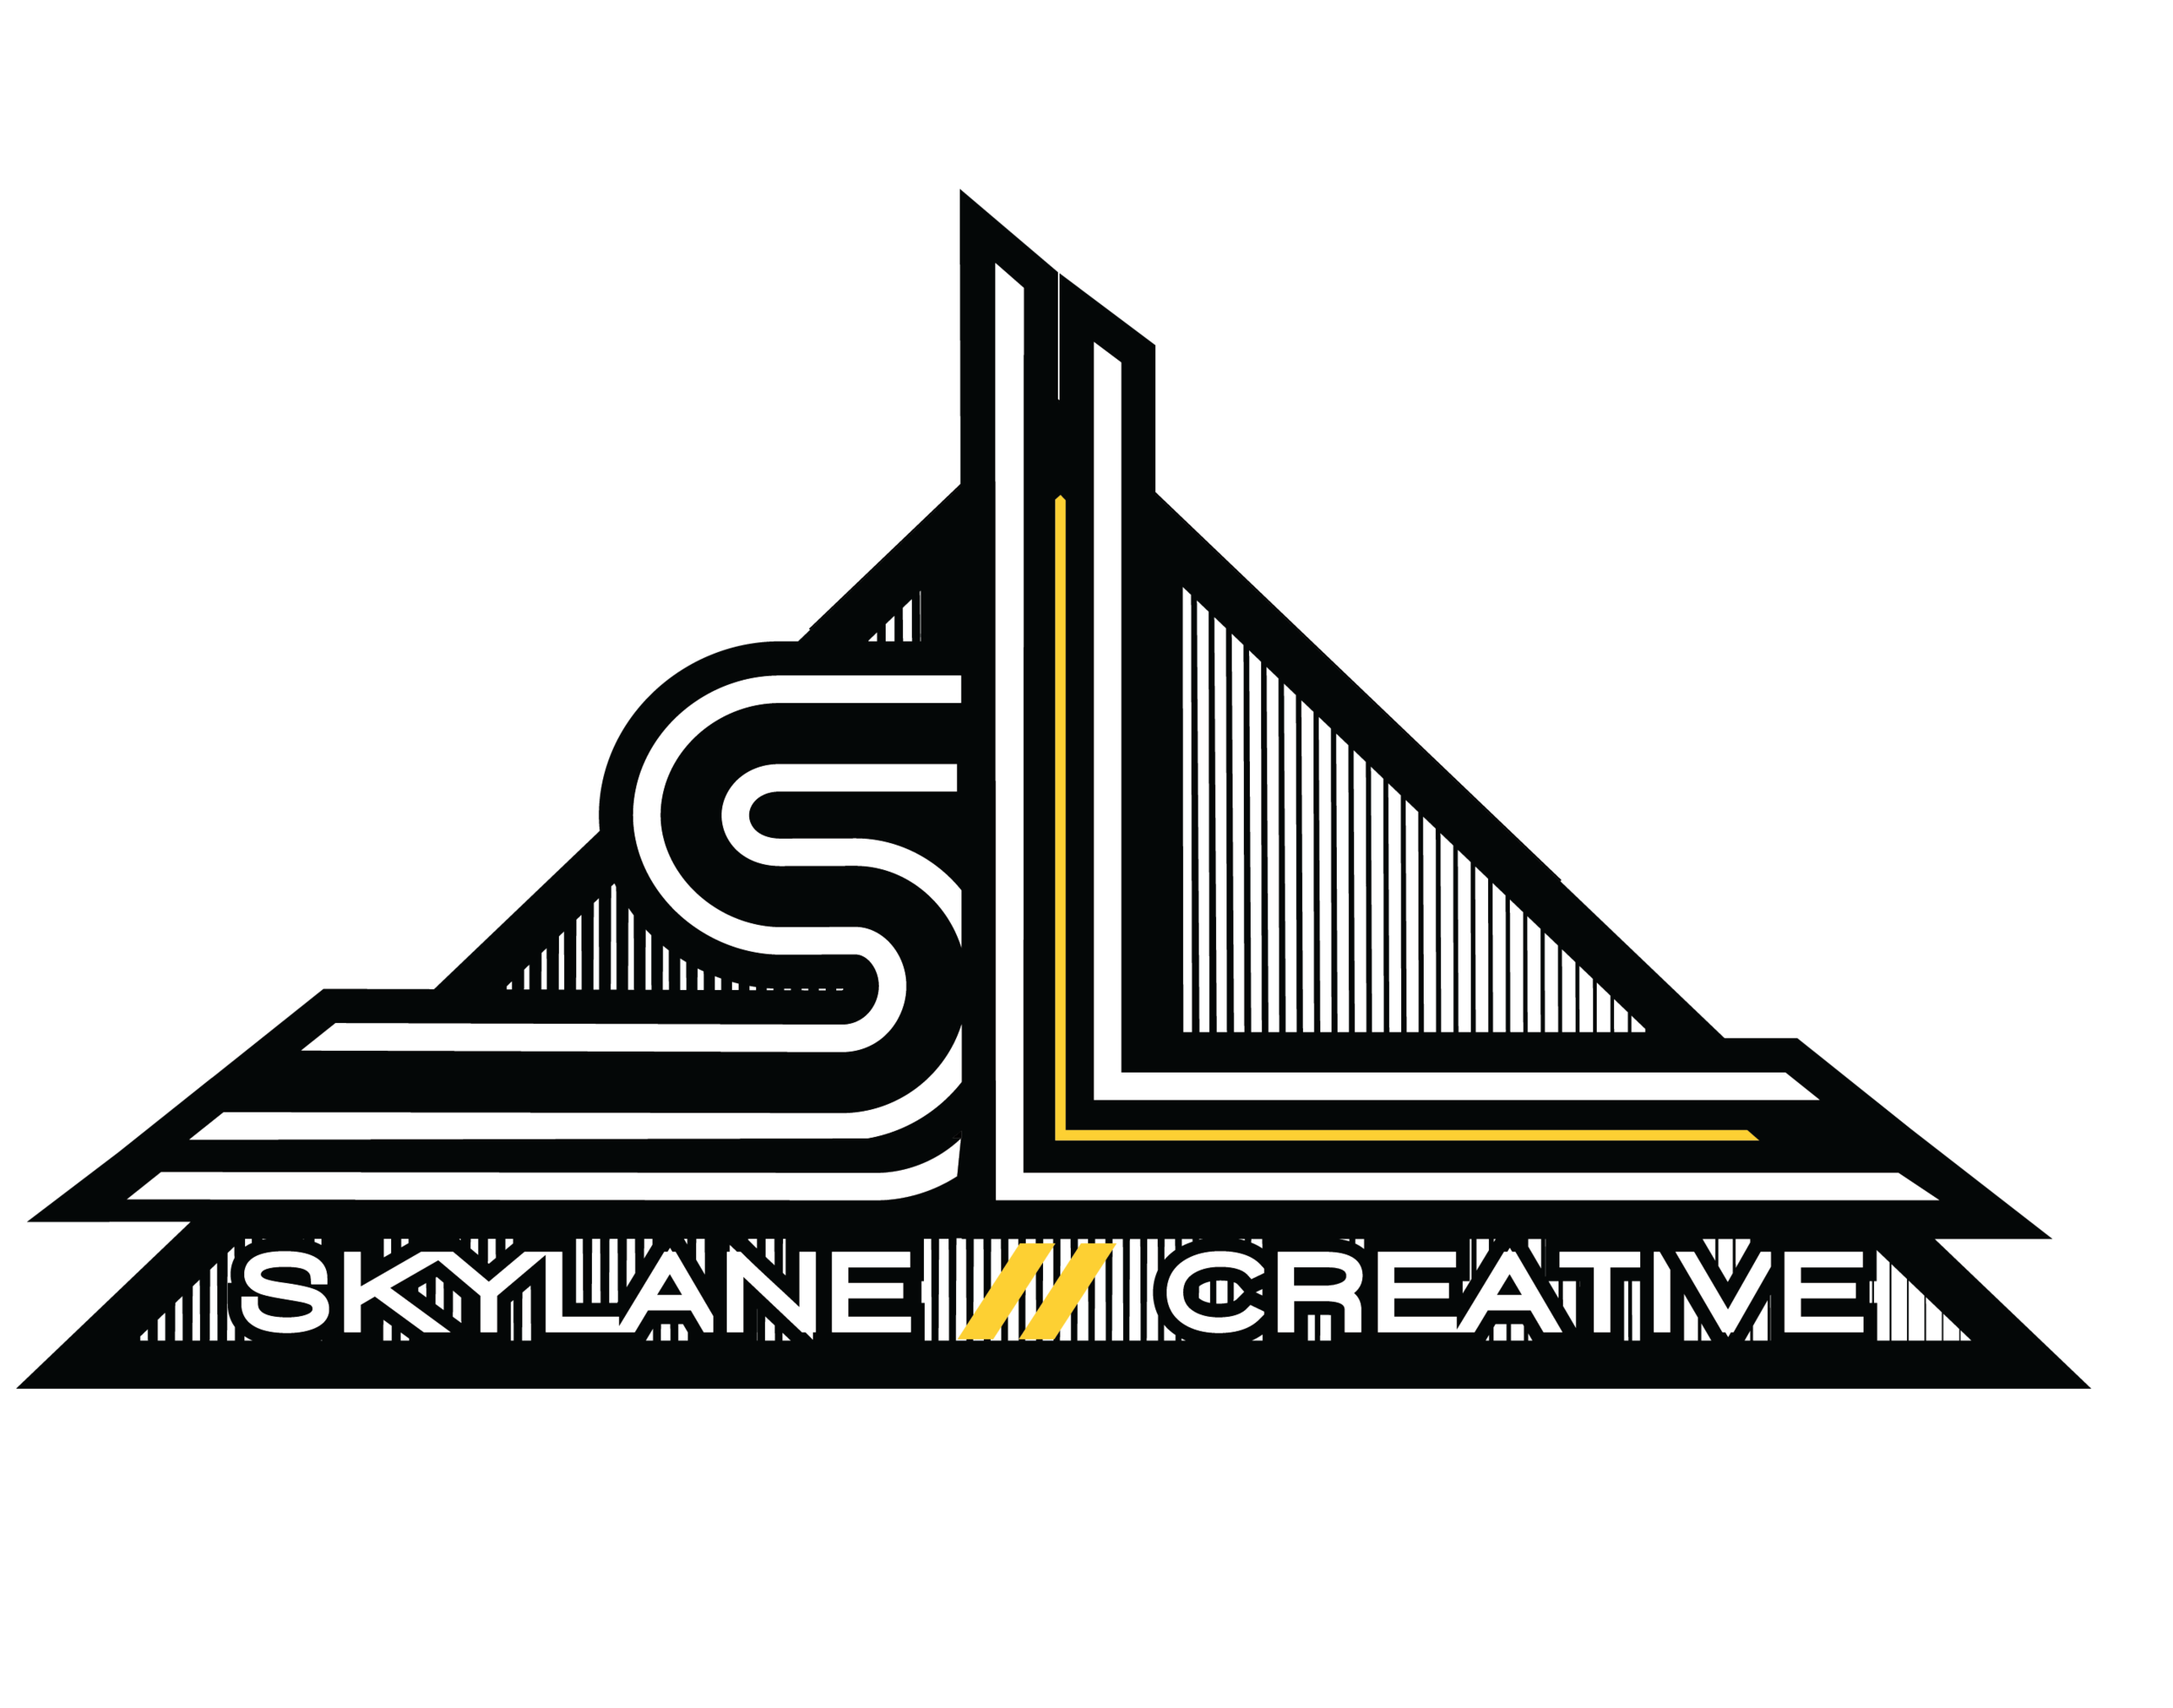 SkyLane_Creative_yellow-01-2.png